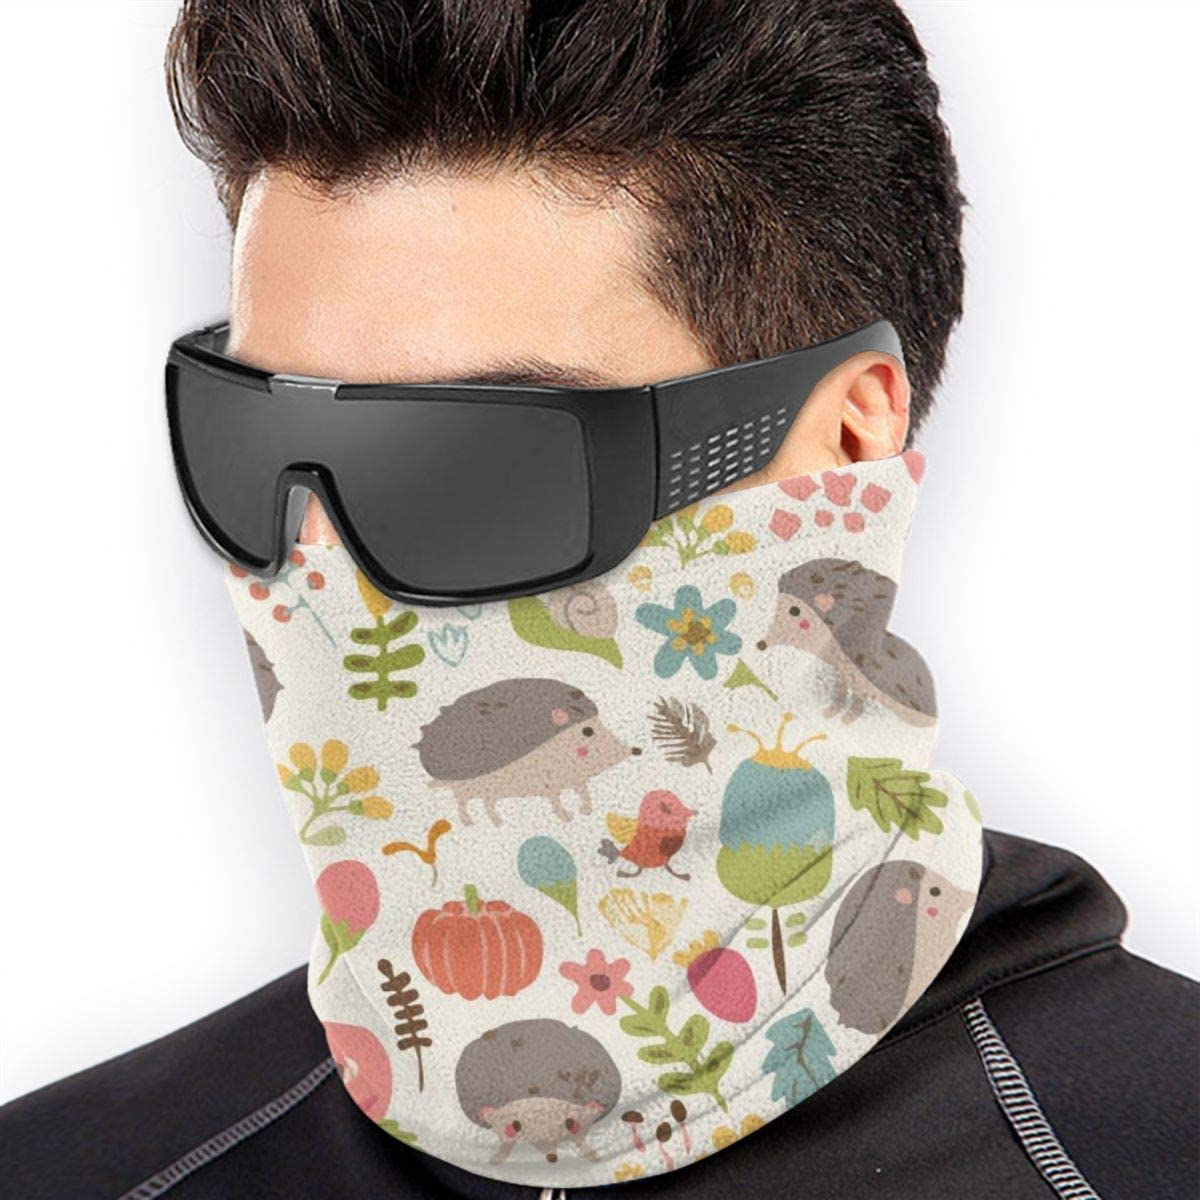 Microfiber Neck Warmer Funny Hedgehog in Bush Neck Gaiter Tube Ear Warmer Headband Scarf Face Mask Balaclava Black